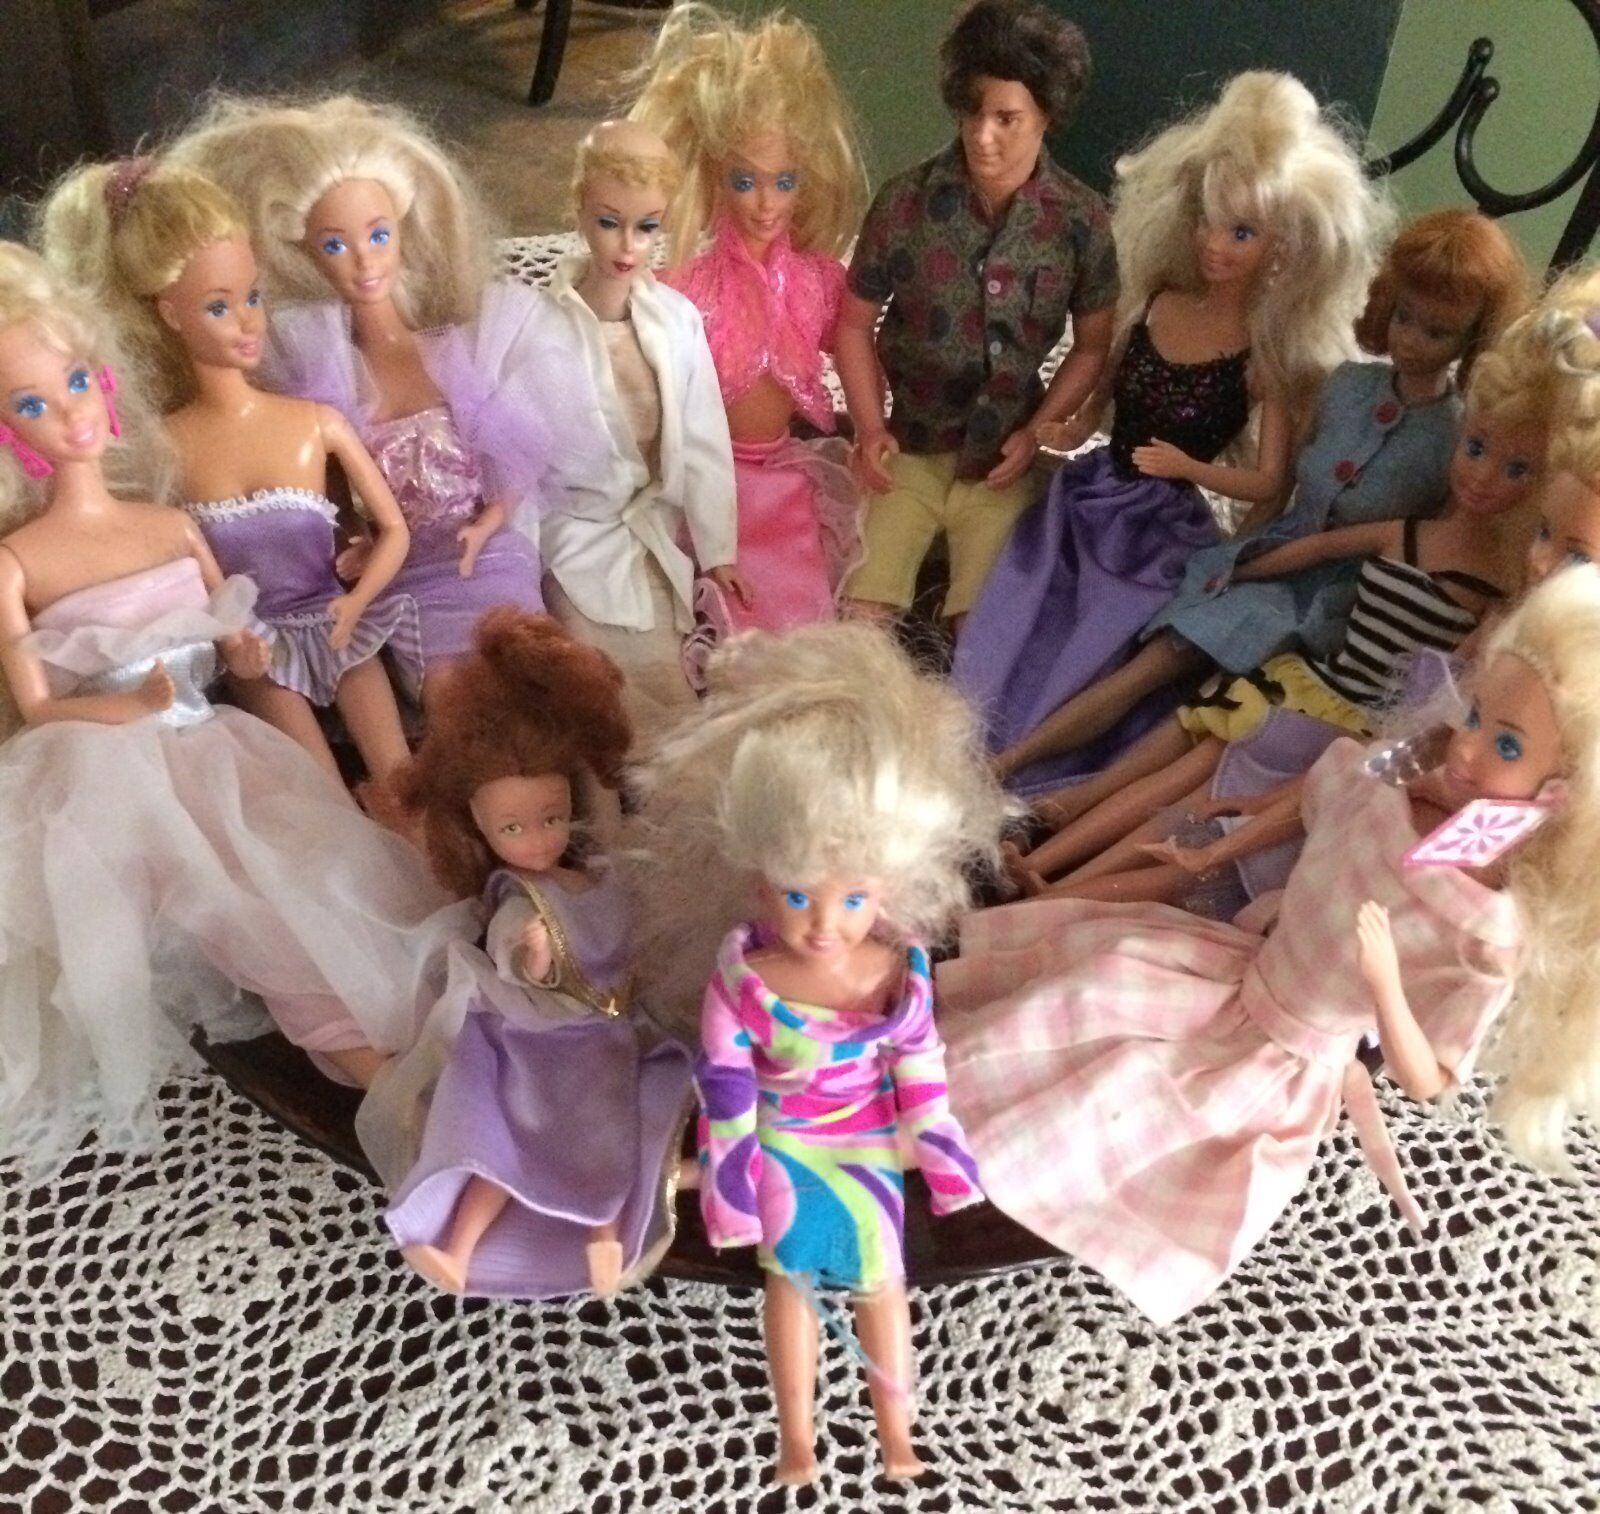 Barbie & Ken doll collection (1950-1980s) 13 dolls + clothes